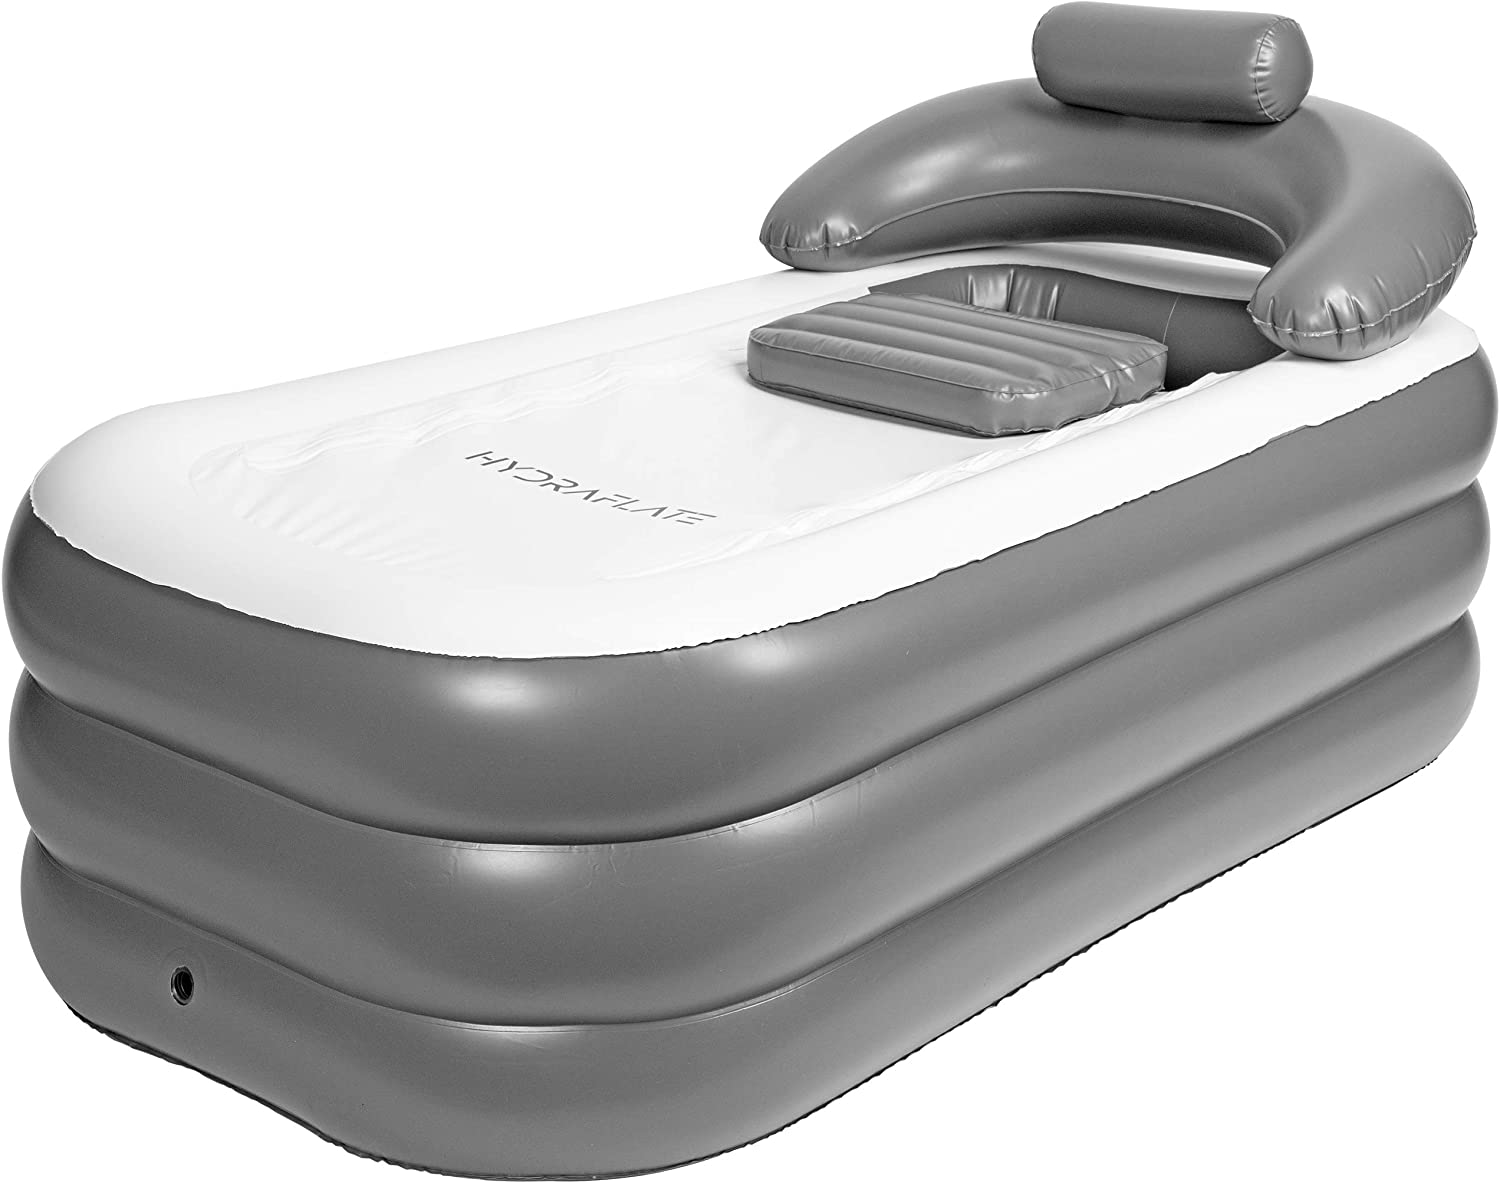 Hydraflate Inflatable Bathtub for Adults & Kids | Portable & Foldable Freestanding Bath for Home or Travel | Mobile Blow Up Spa for Soaking | Single Person Capacity to Compliment Bathroom Shower